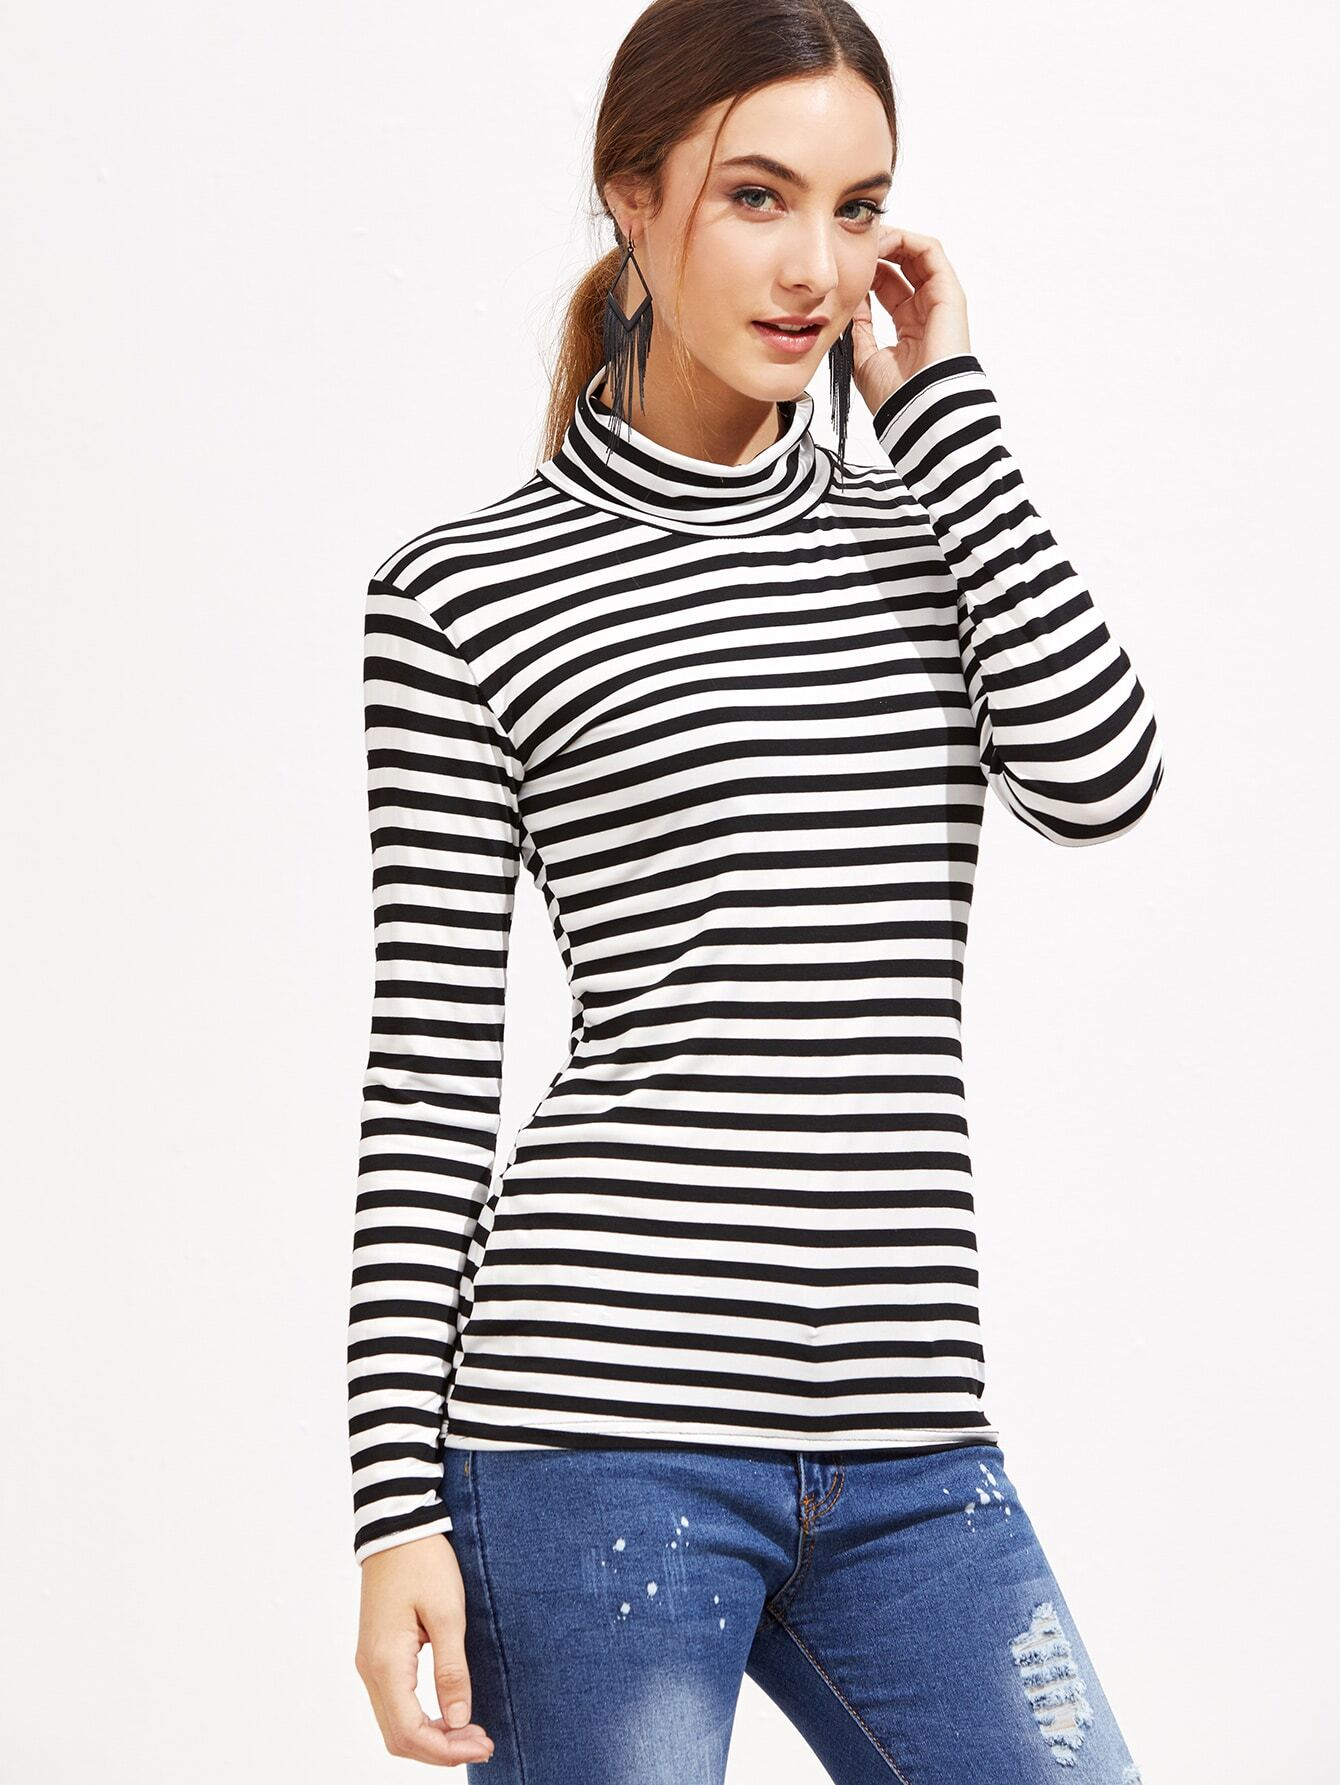 Black and white striped high neck t shirt emmacloth women for High neck tee shirts